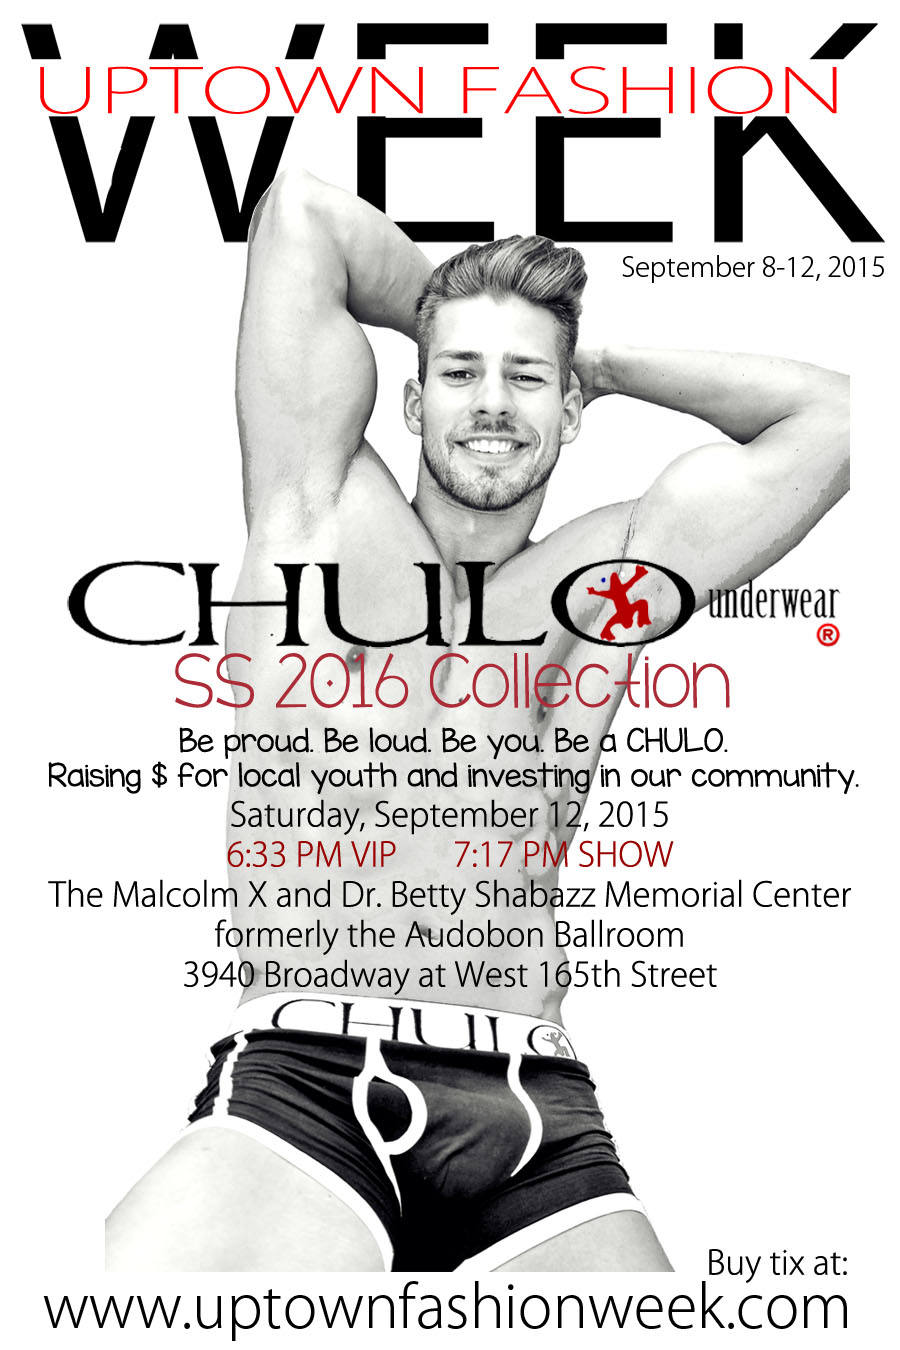 UPDATED CHULO Underwear UPTOWN FASHION WEEK promo with fade by RMuniz